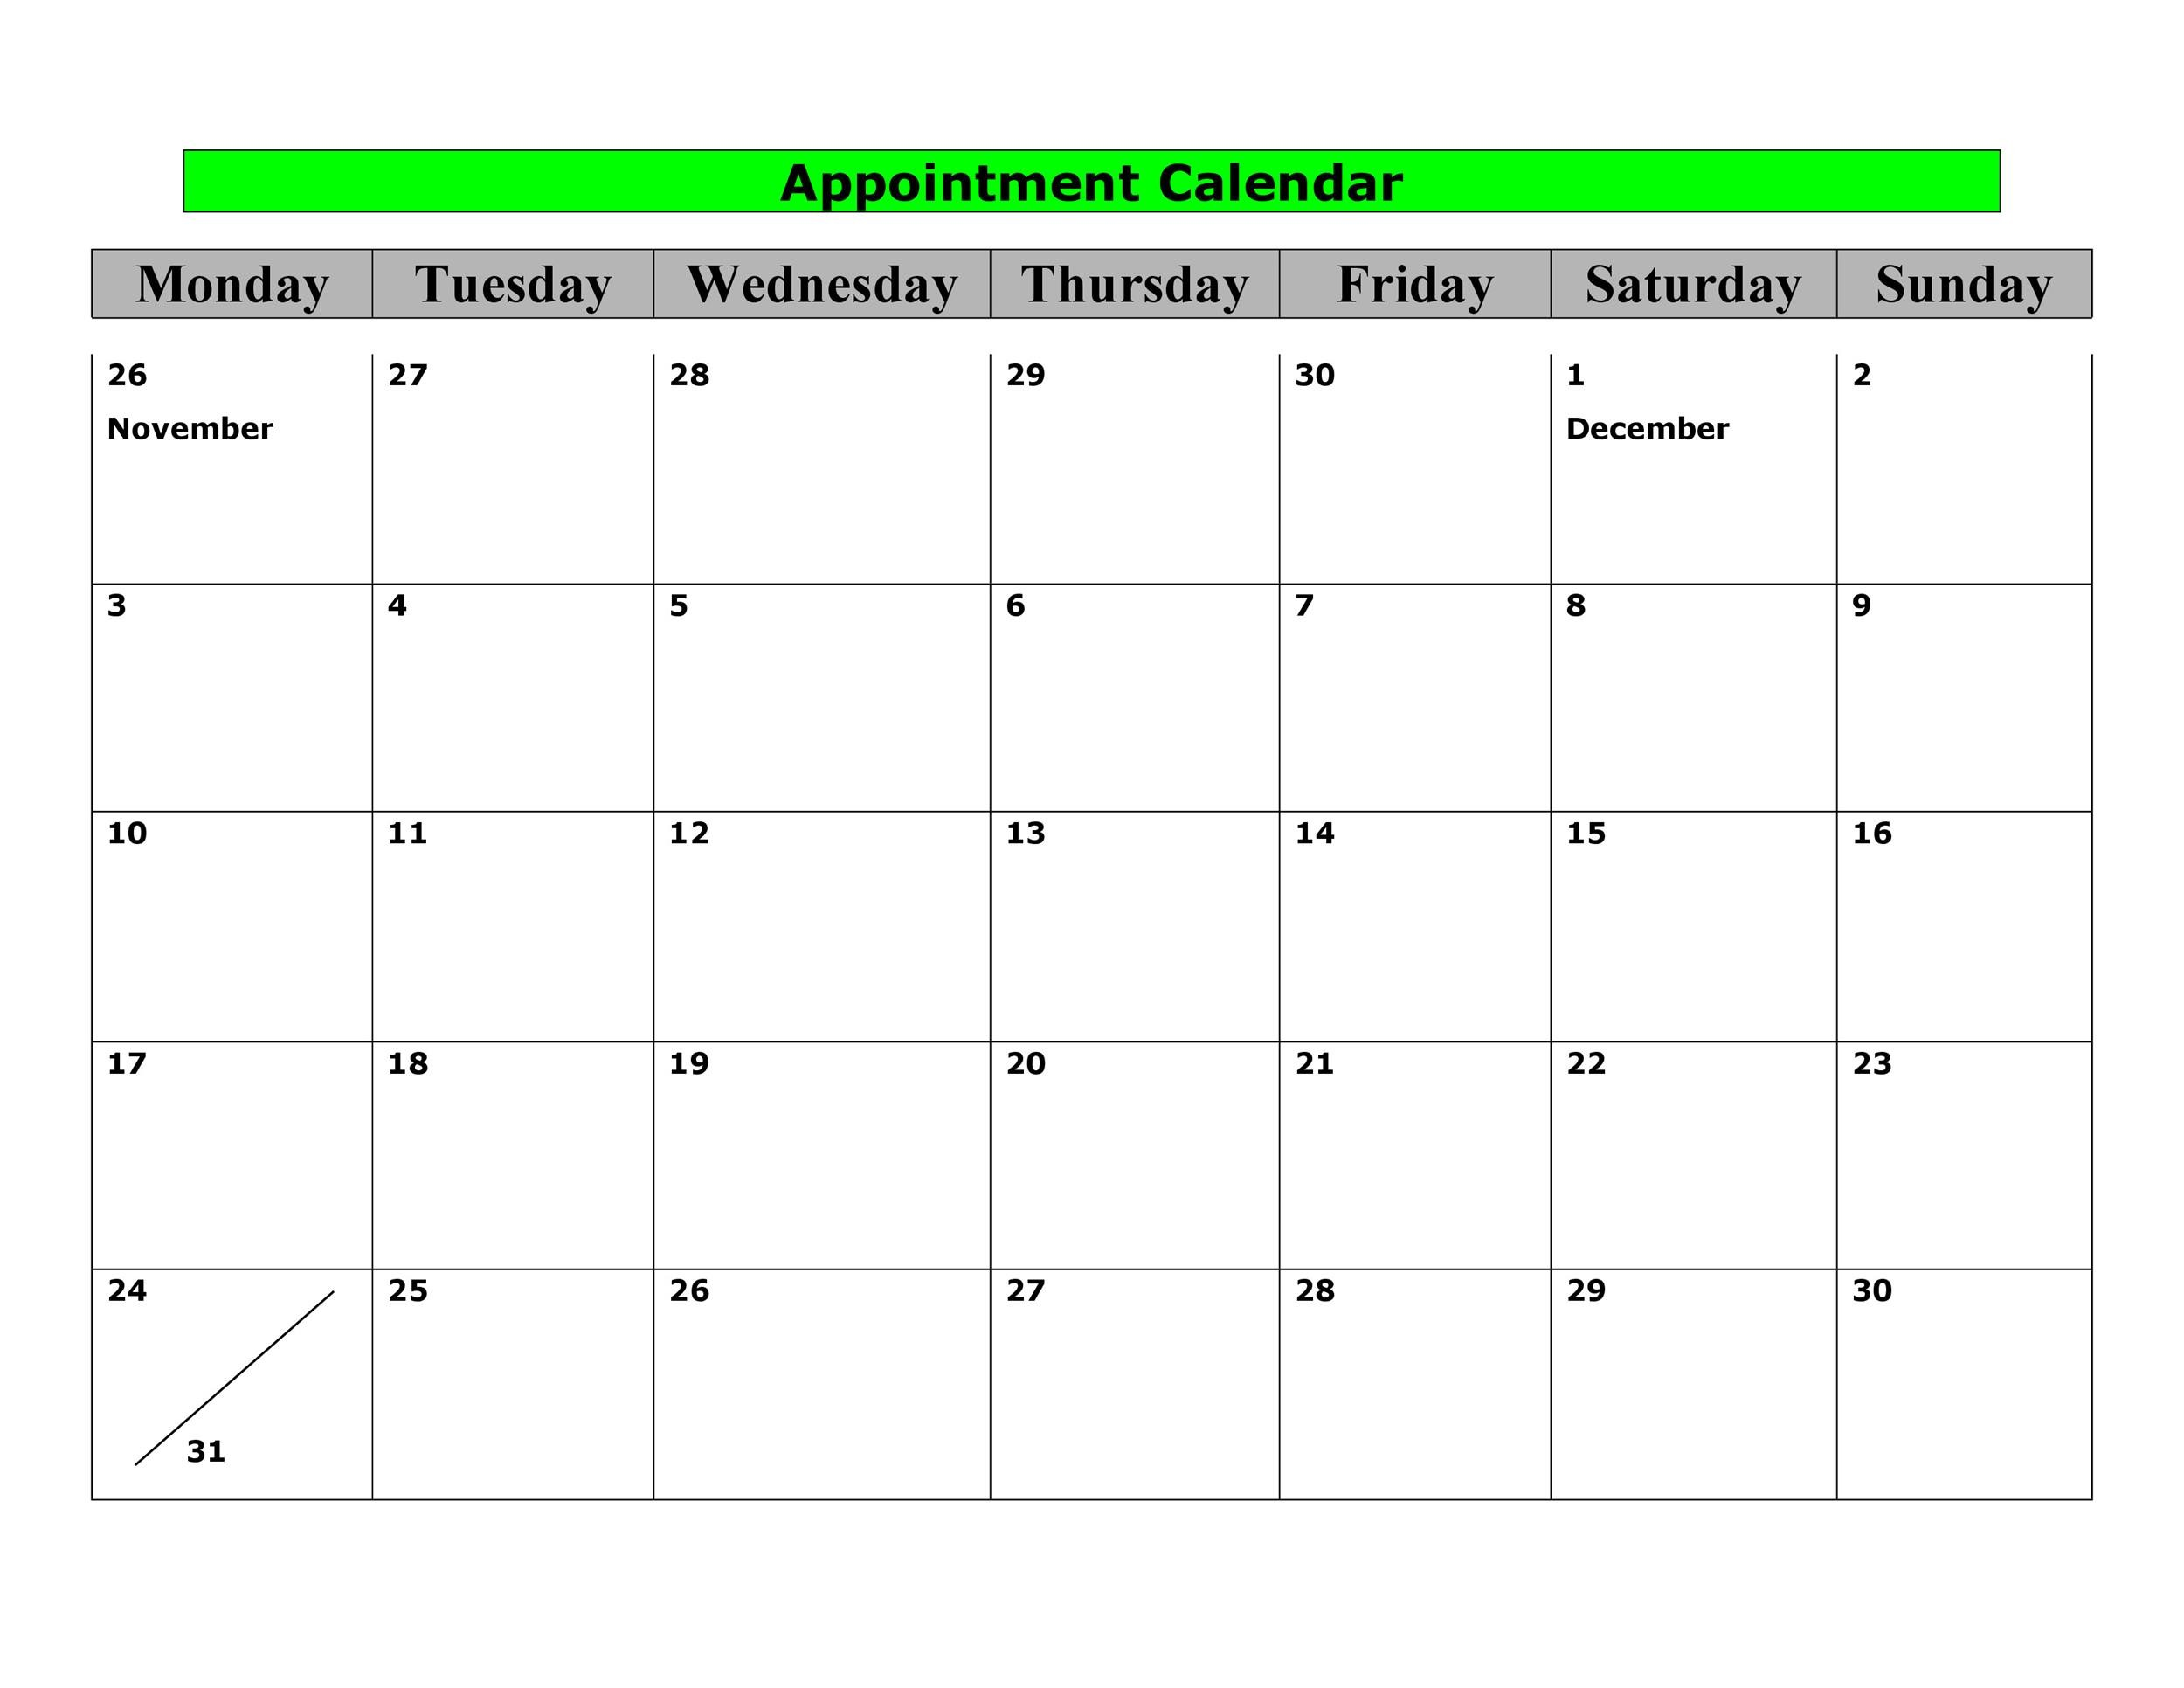 photo regarding Printable Appointment Calendar called 45 Printable Appointment Agenda Templates [ Appointment